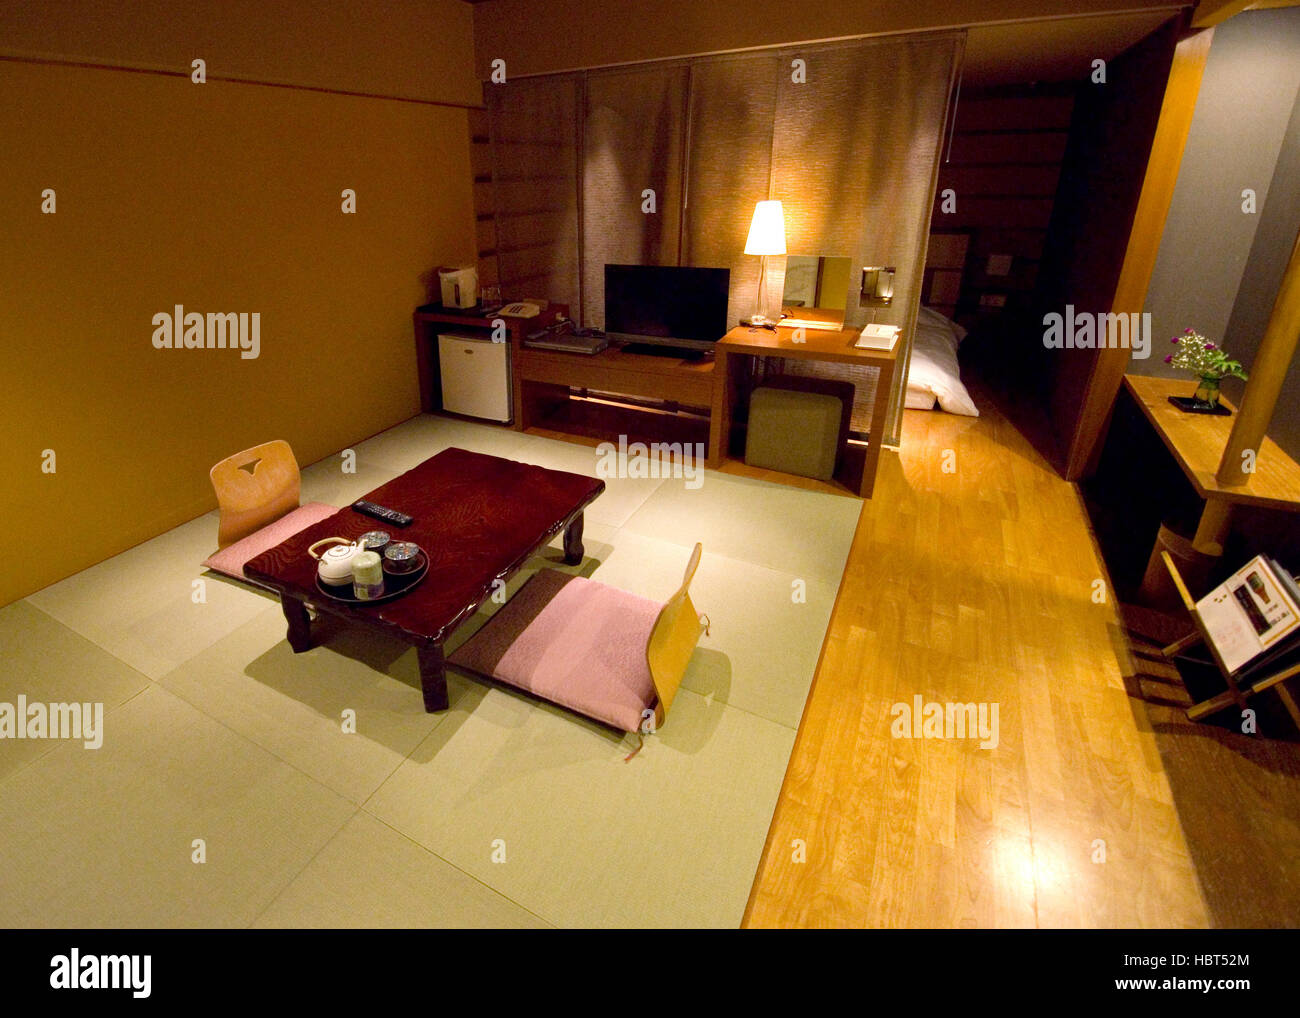 Groovy Traditional Japanese Style Hotel Room With Tatami Mats And Download Free Architecture Designs Xaembritishbridgeorg